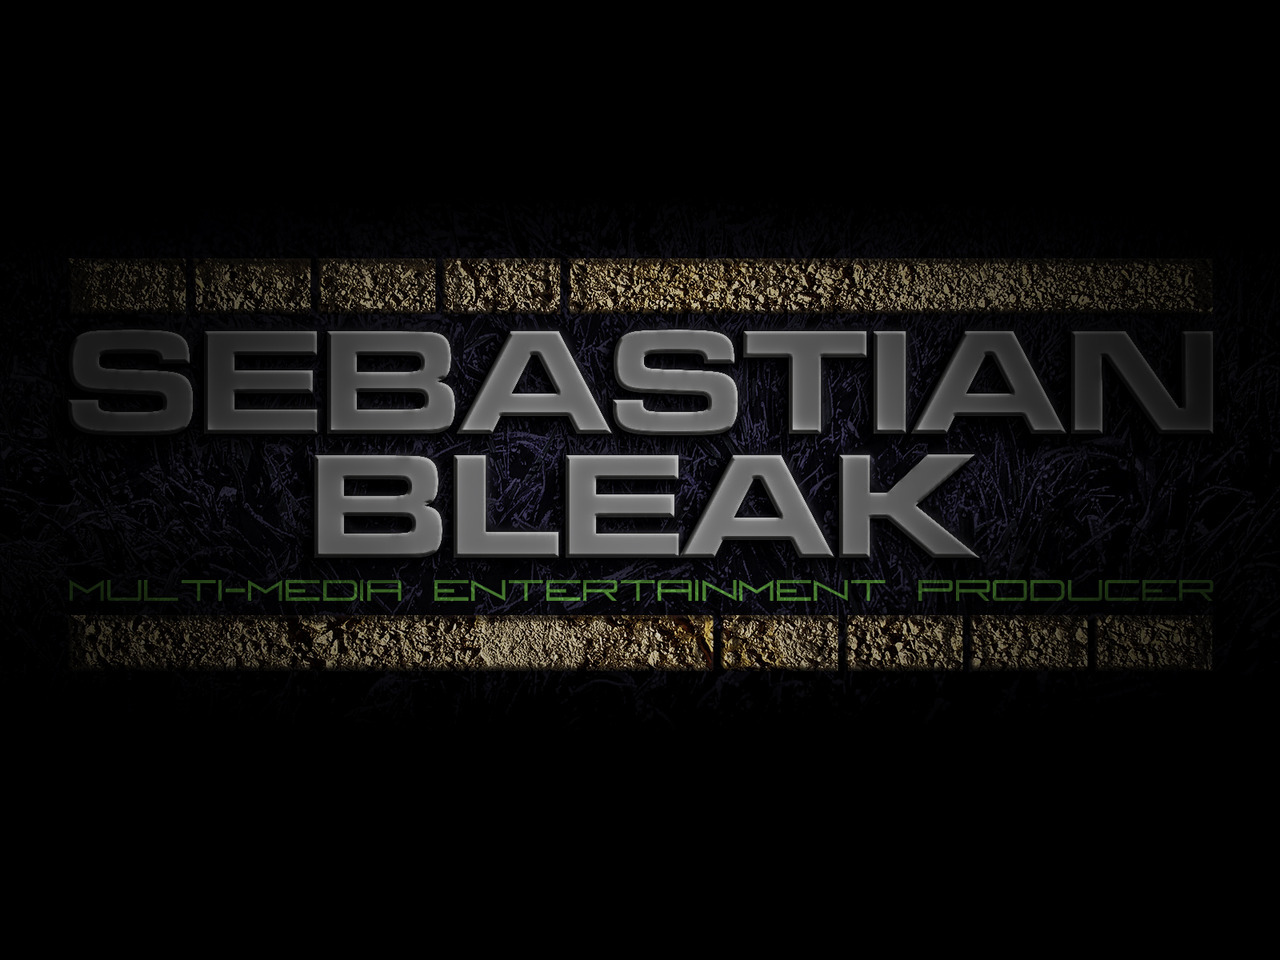 Sebastian Bleak Multi-Media Entertianment Producer Title Card